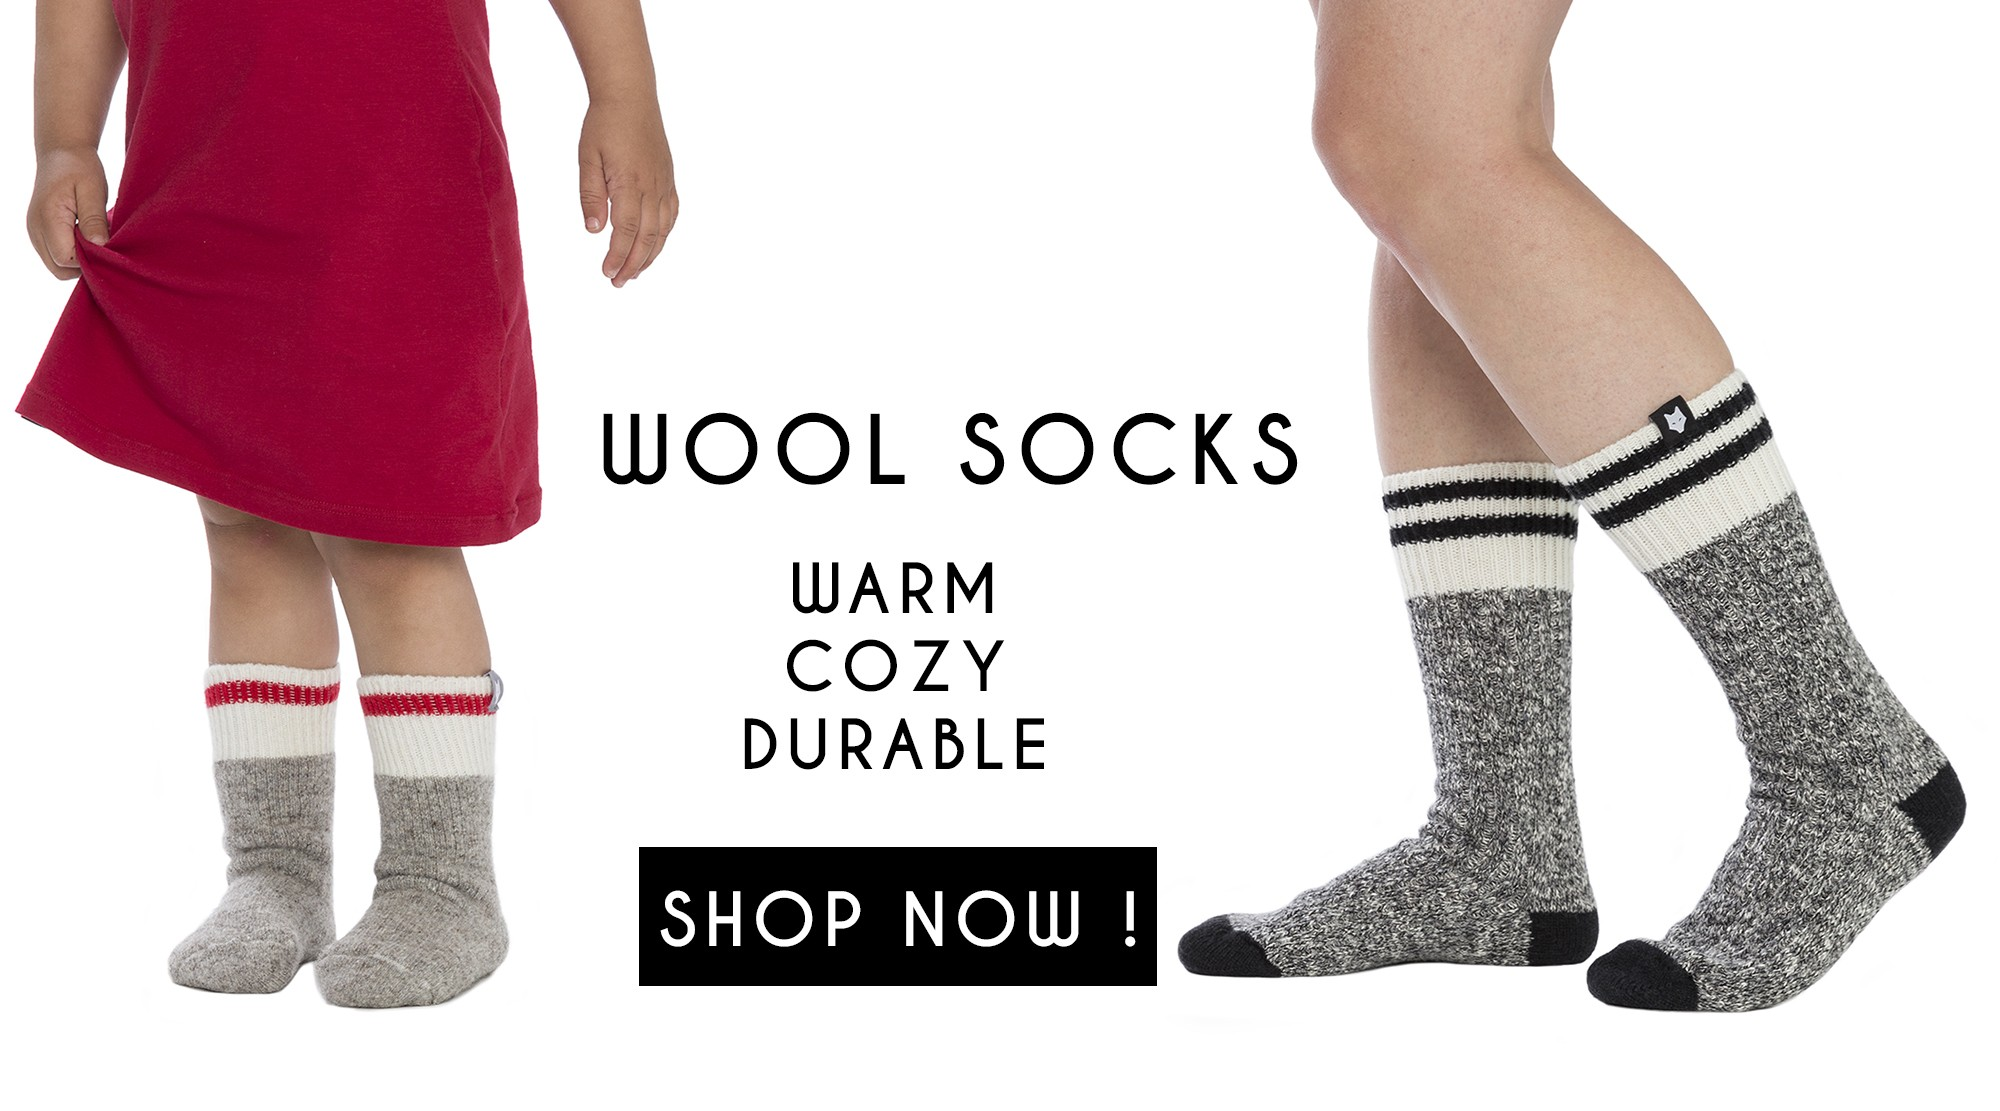 Chandaildeloup.com Wool socks